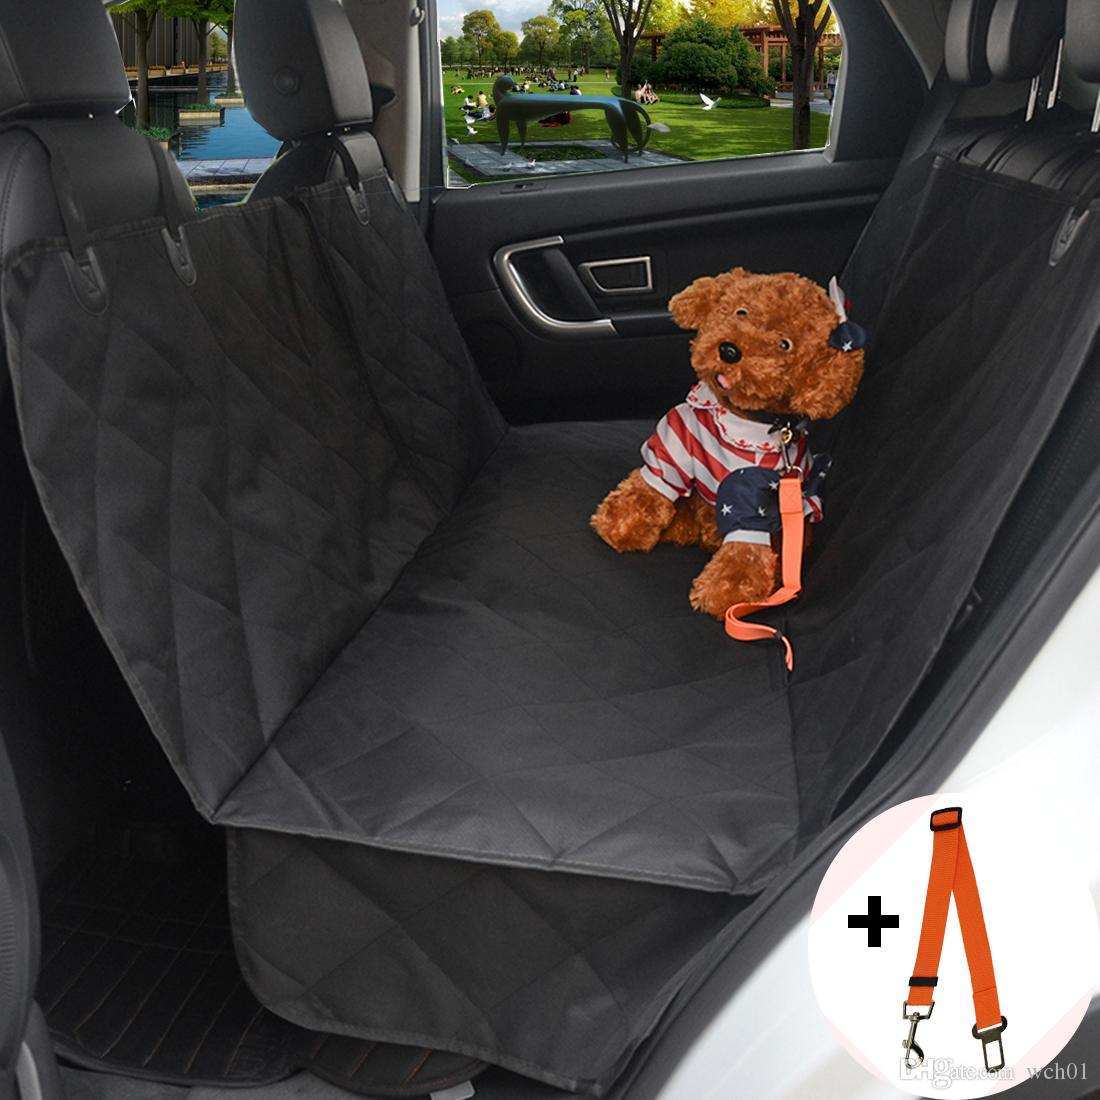 in seats products washable proof shedding protects scratches durable as from dirt dog seat installs hammock pet scratch wetness securely waterproof luxury captain car truck your slip suv paw cover